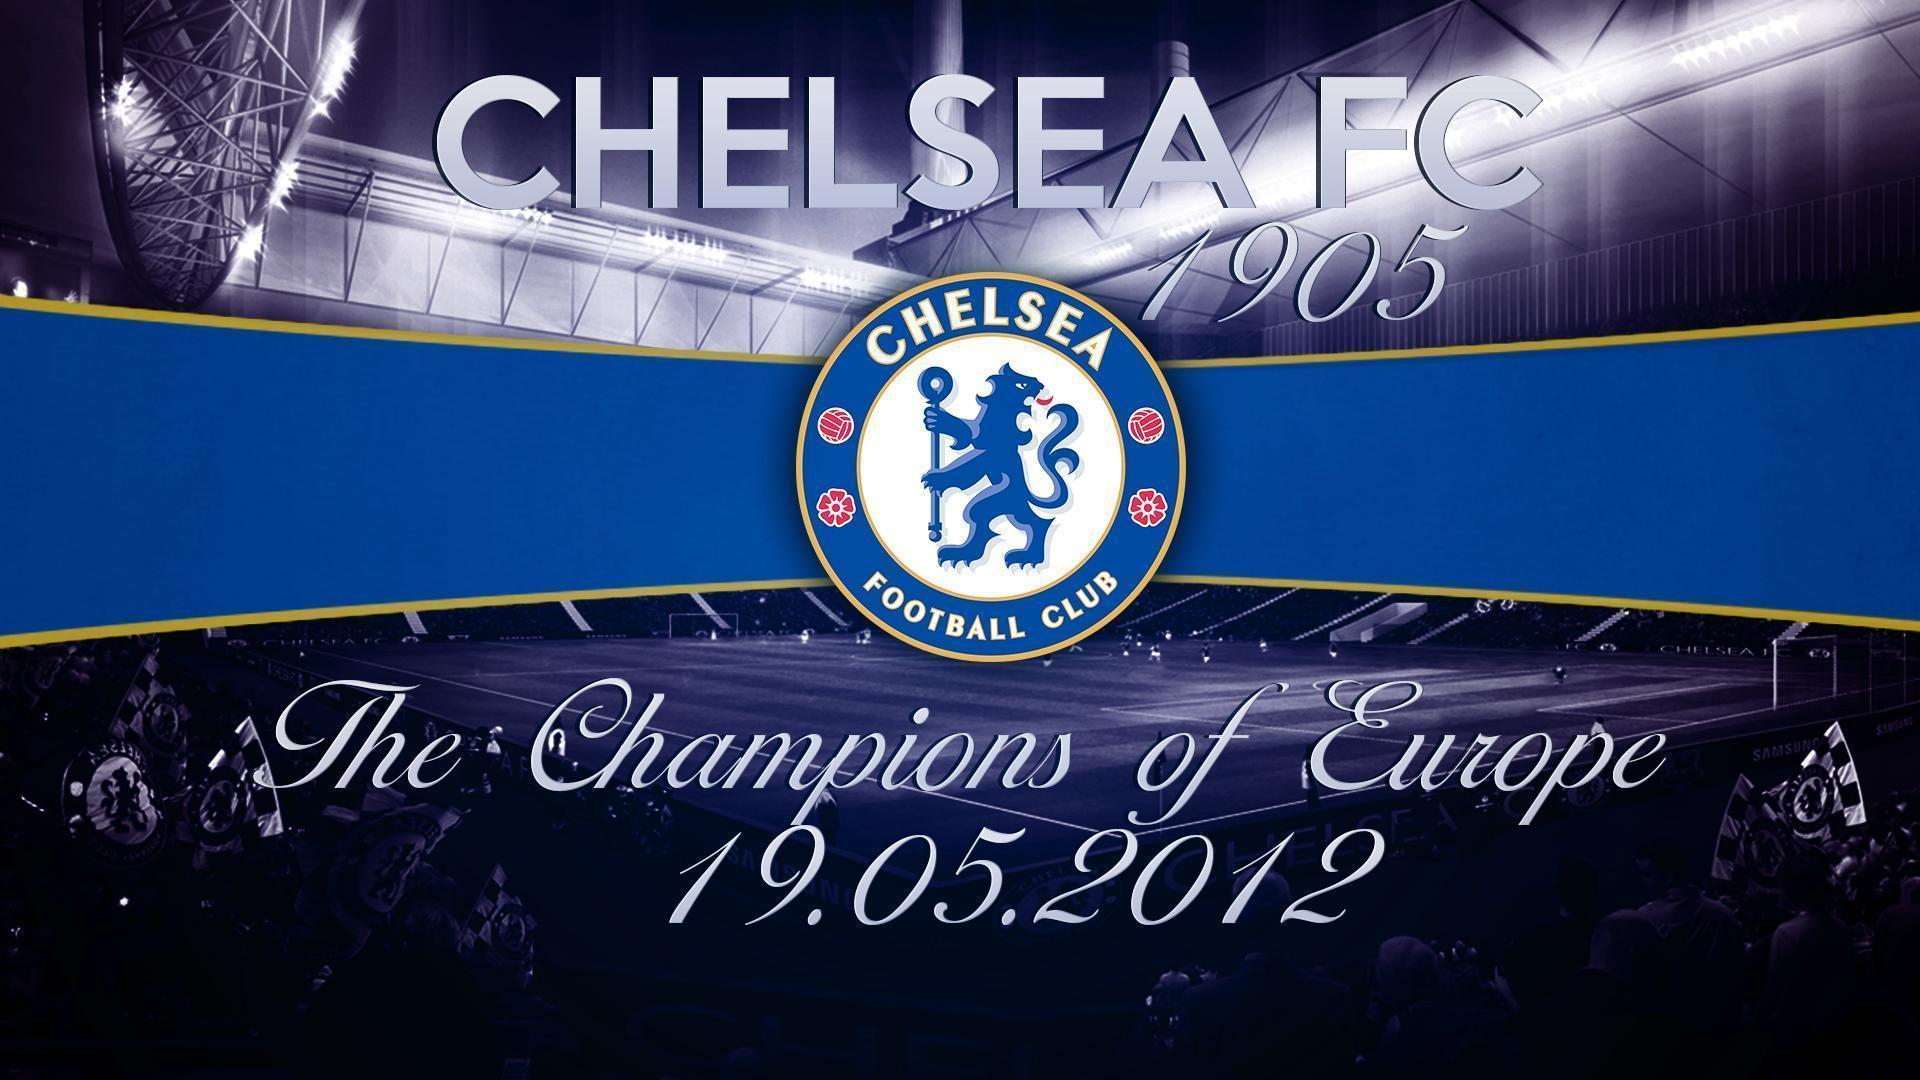 chelsea fc wallpapers for pc - photo #23